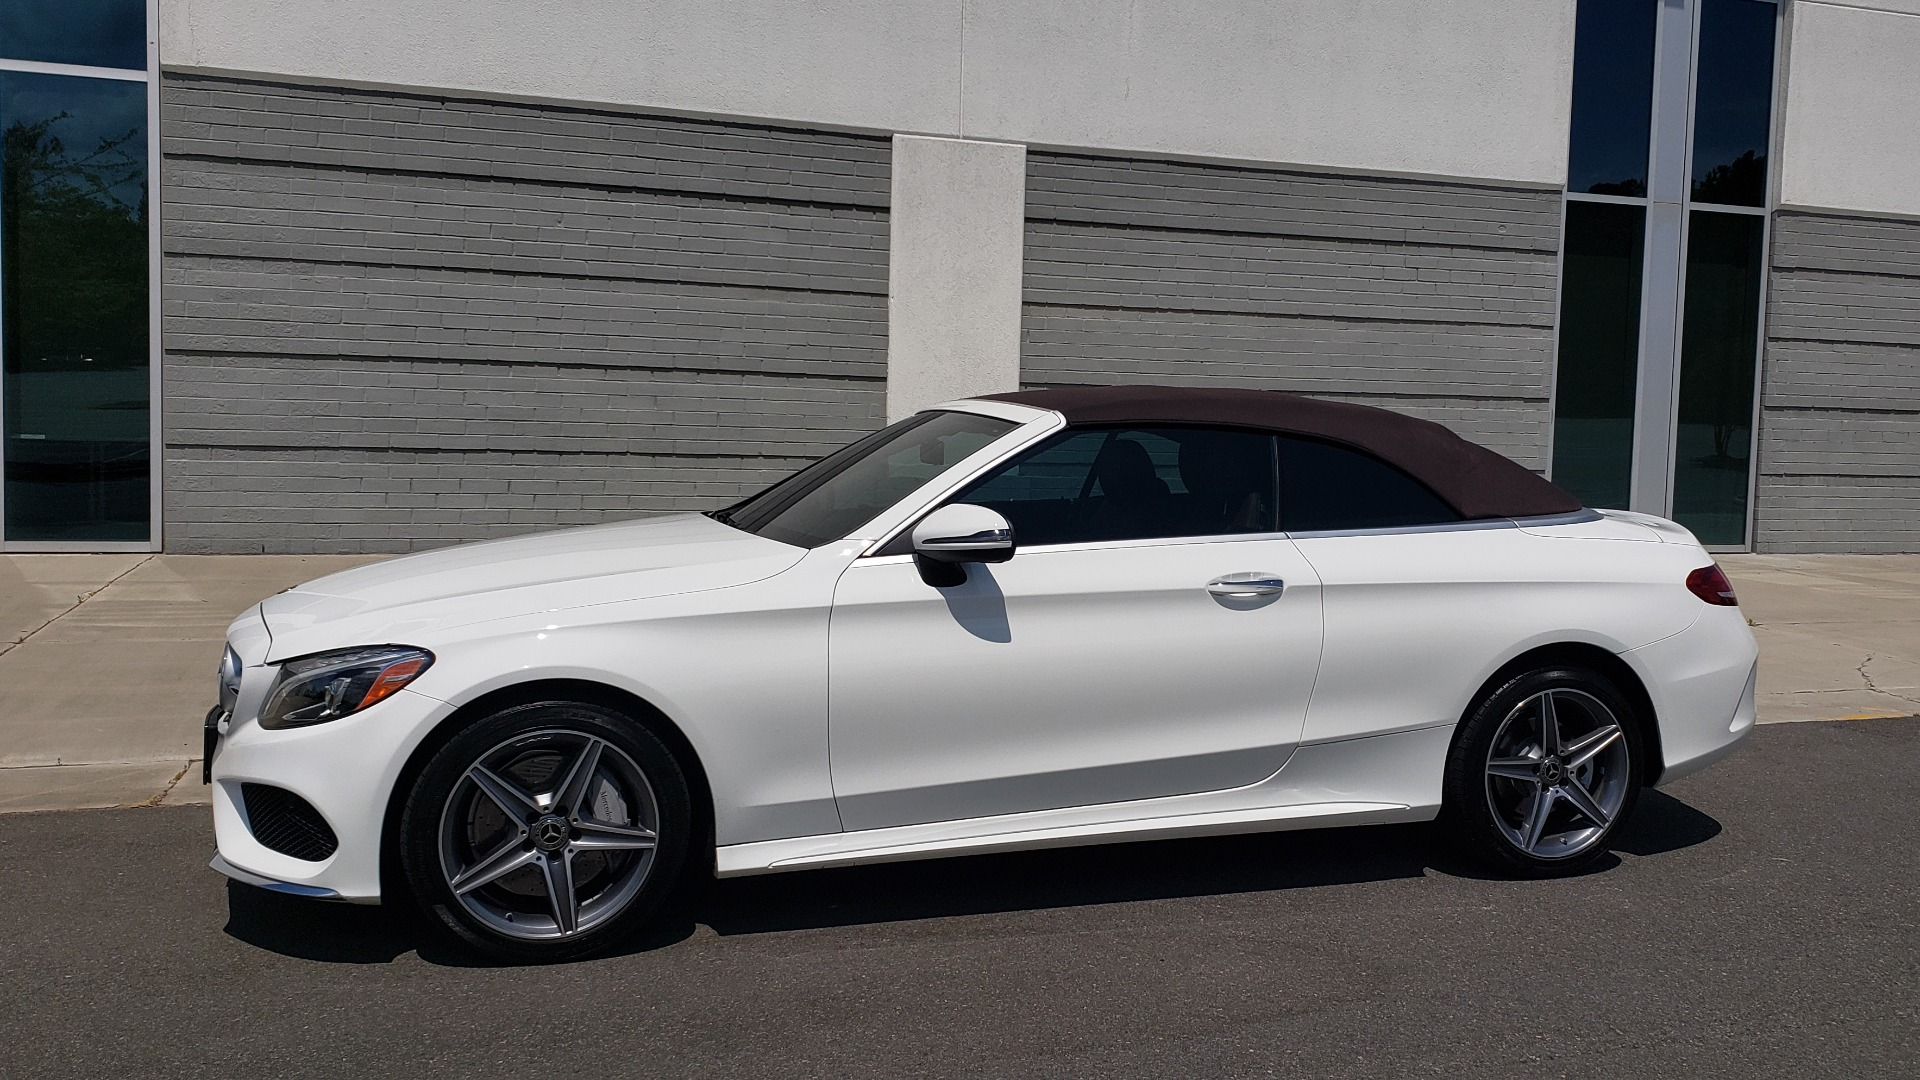 Used 2018 Mercedes-Benz C-CLASS C 300 CABRIOLET PREMIUM / AWD / BURMESTER SND / APPLE / REARVIEW for sale $44,995 at Formula Imports in Charlotte NC 28227 4